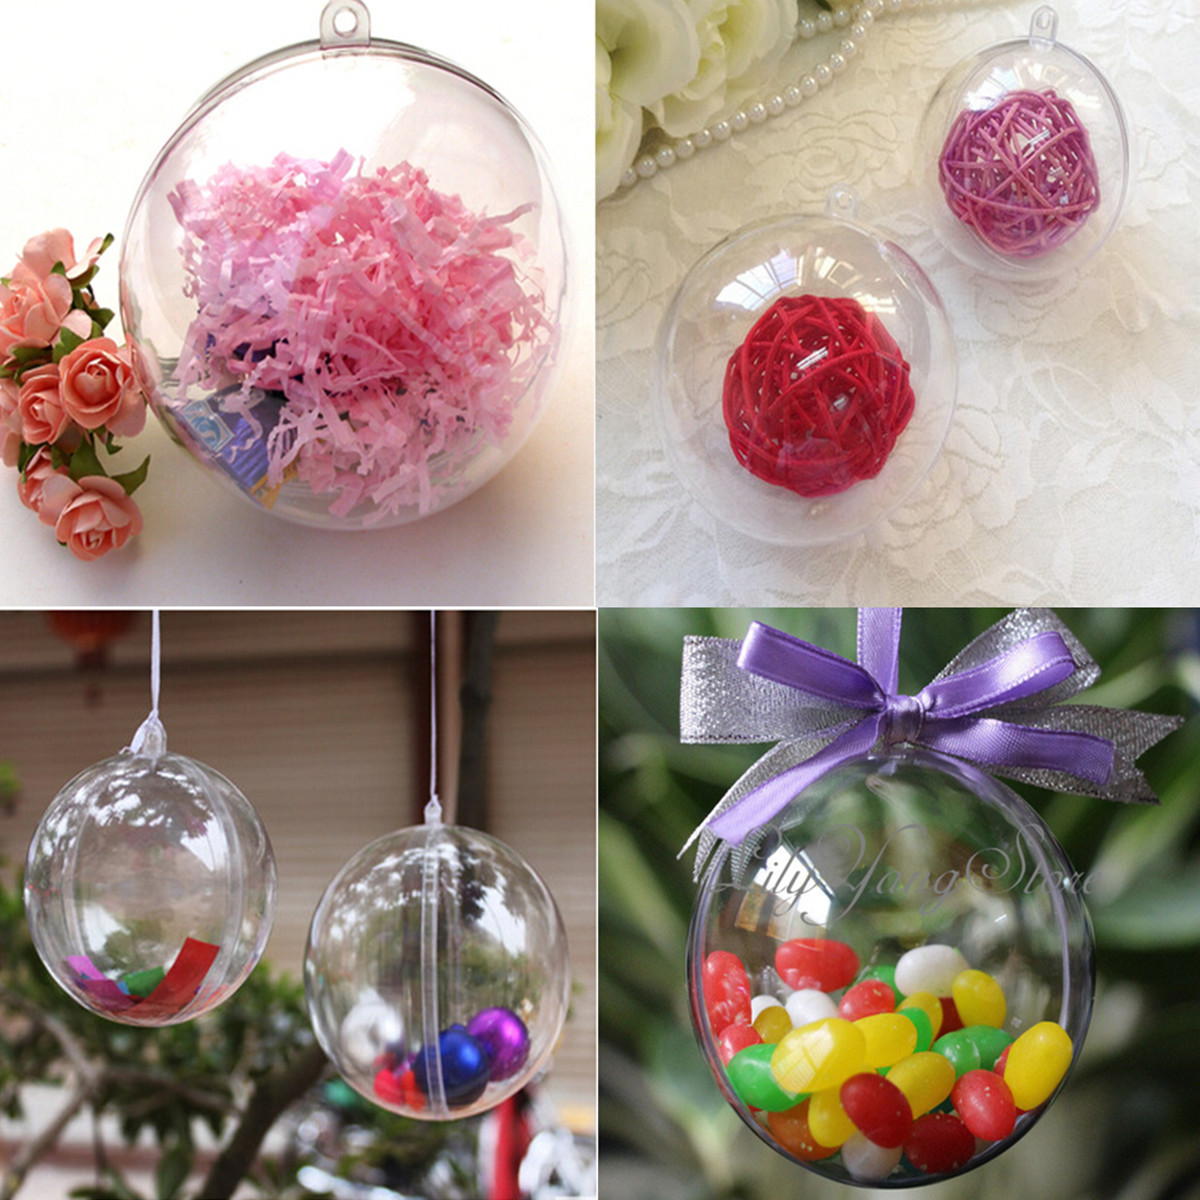 Decorative Christmas Ball Ornaments: 4Size Christmas Decorations Hanging Ball Bauble Candy